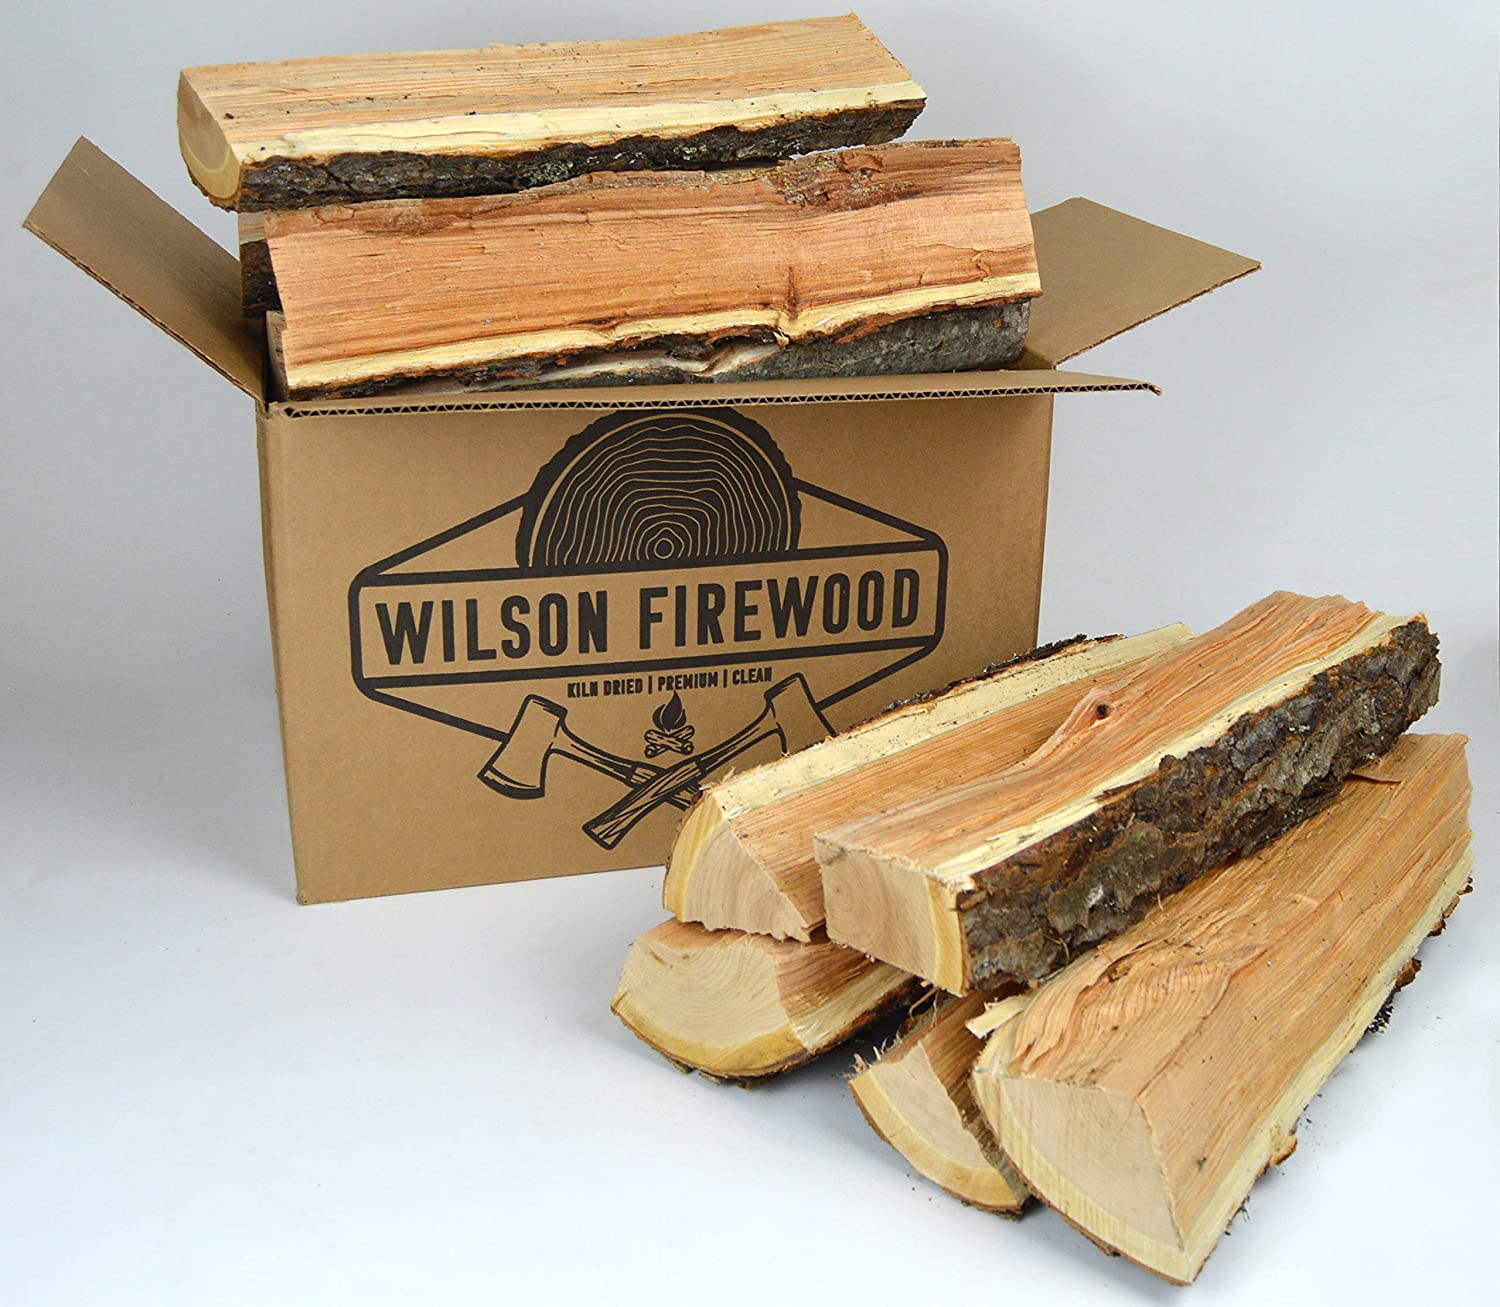 Wilson Enterprises Split Firewood- Birch, Maple, Oak, Apple, or Cherry. Natural Kiln Dried Firewood (Cherry)